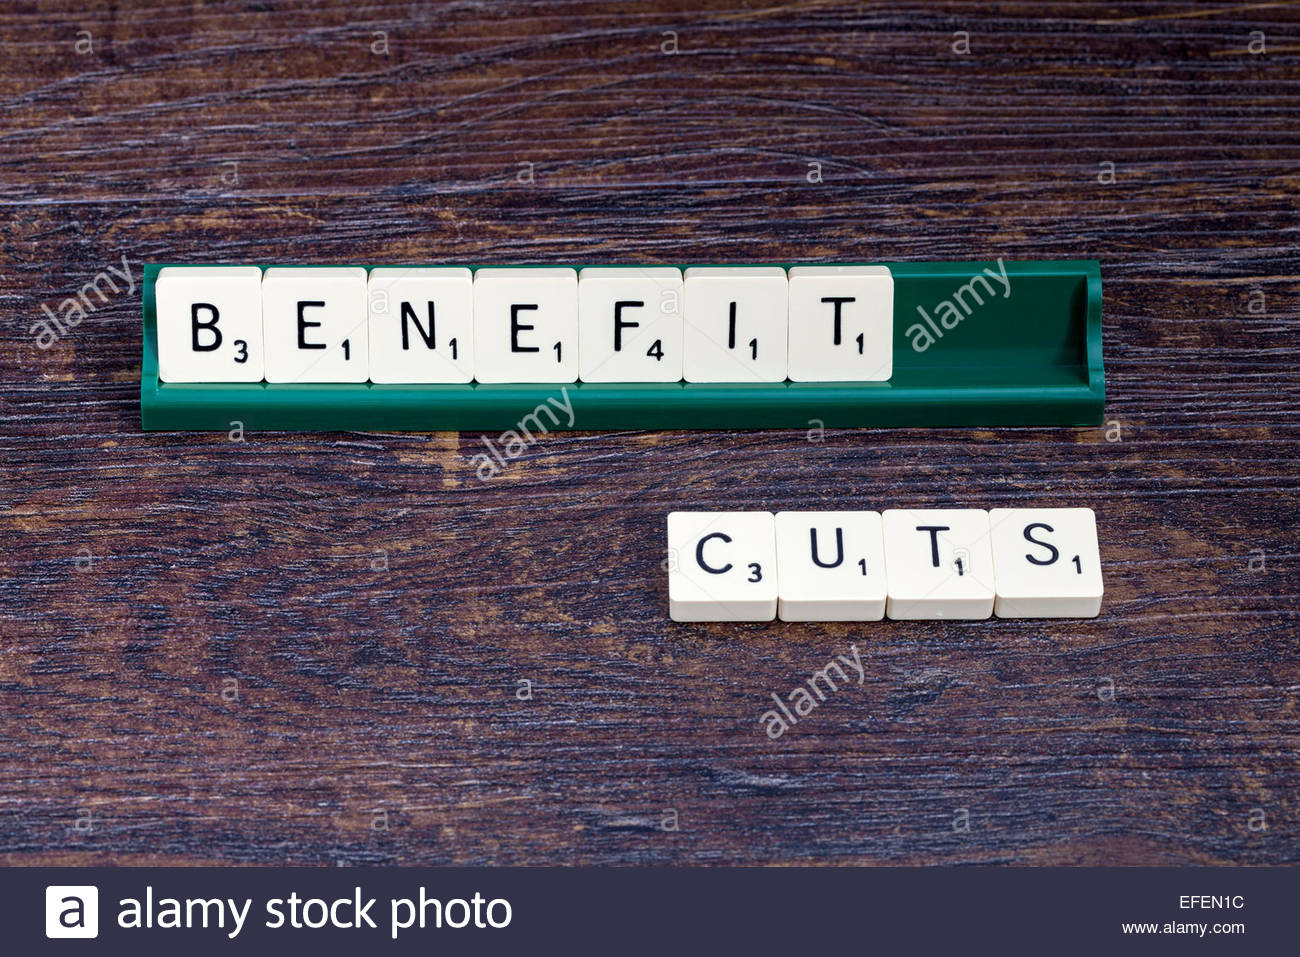 Benefit Cuts spelled out with scrabble letters - Stock Image